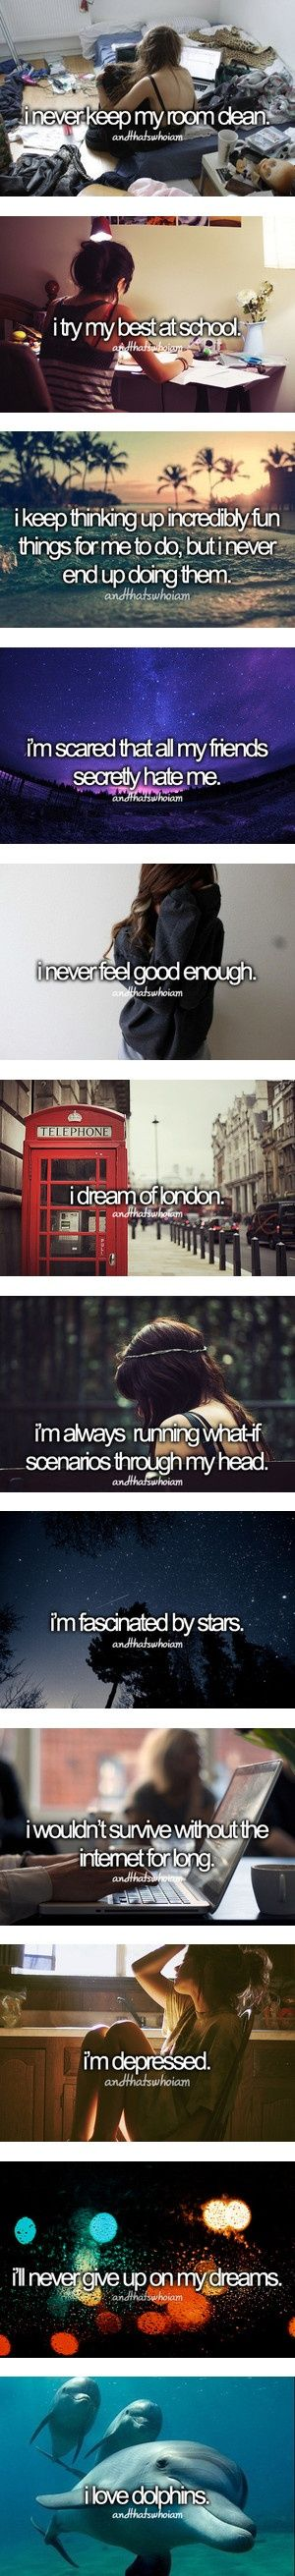 All except for 3rd to last and dreaming of London